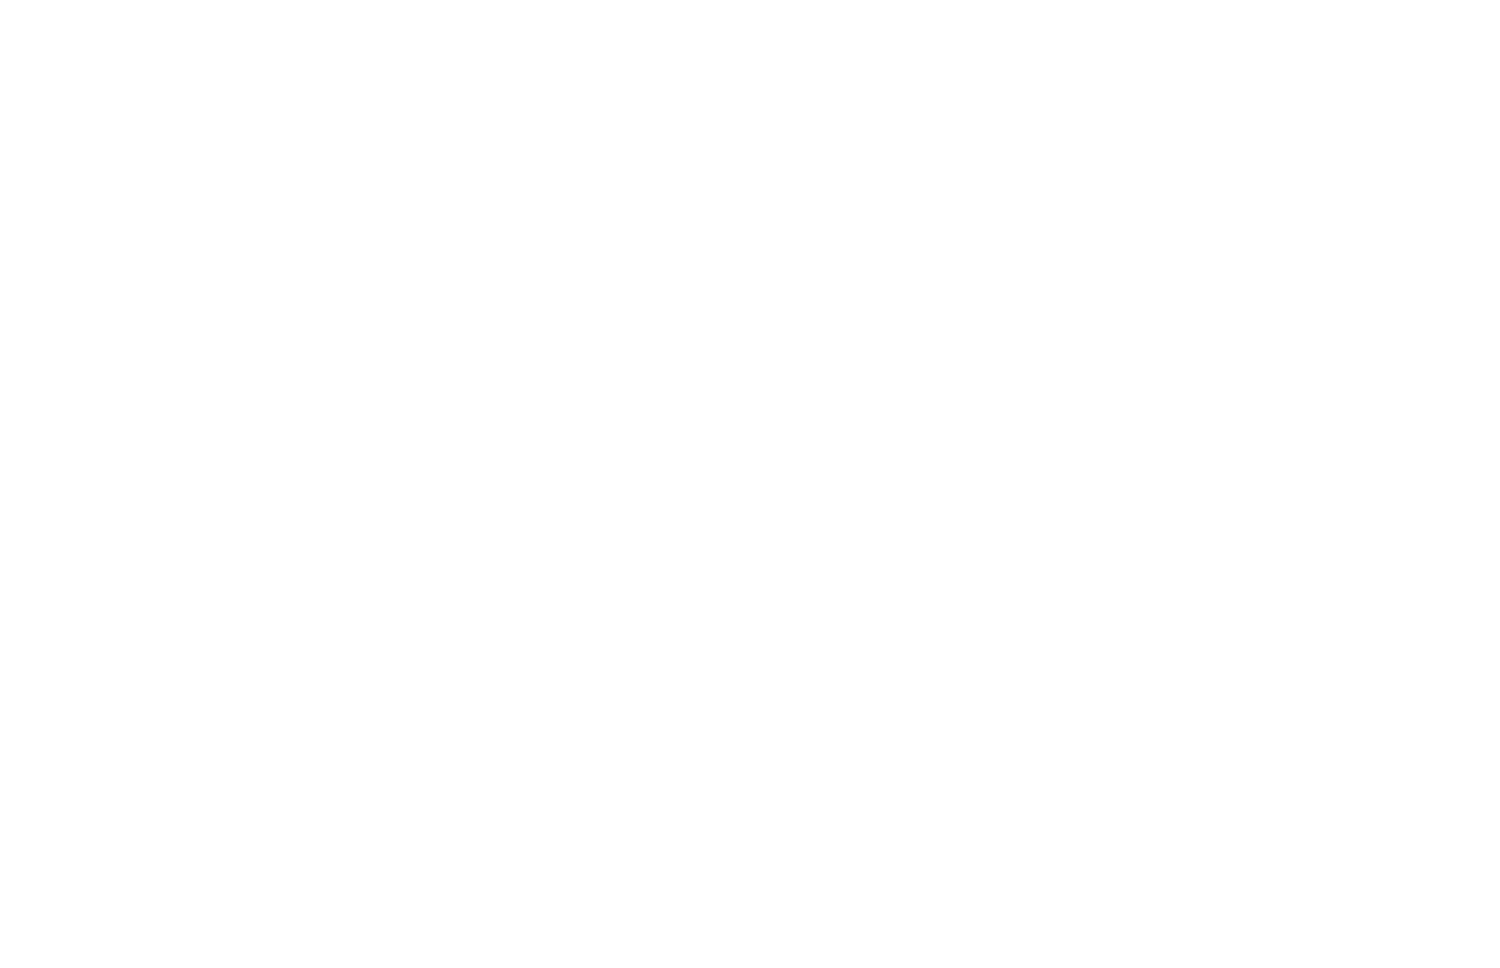 The Samantha Russell Band